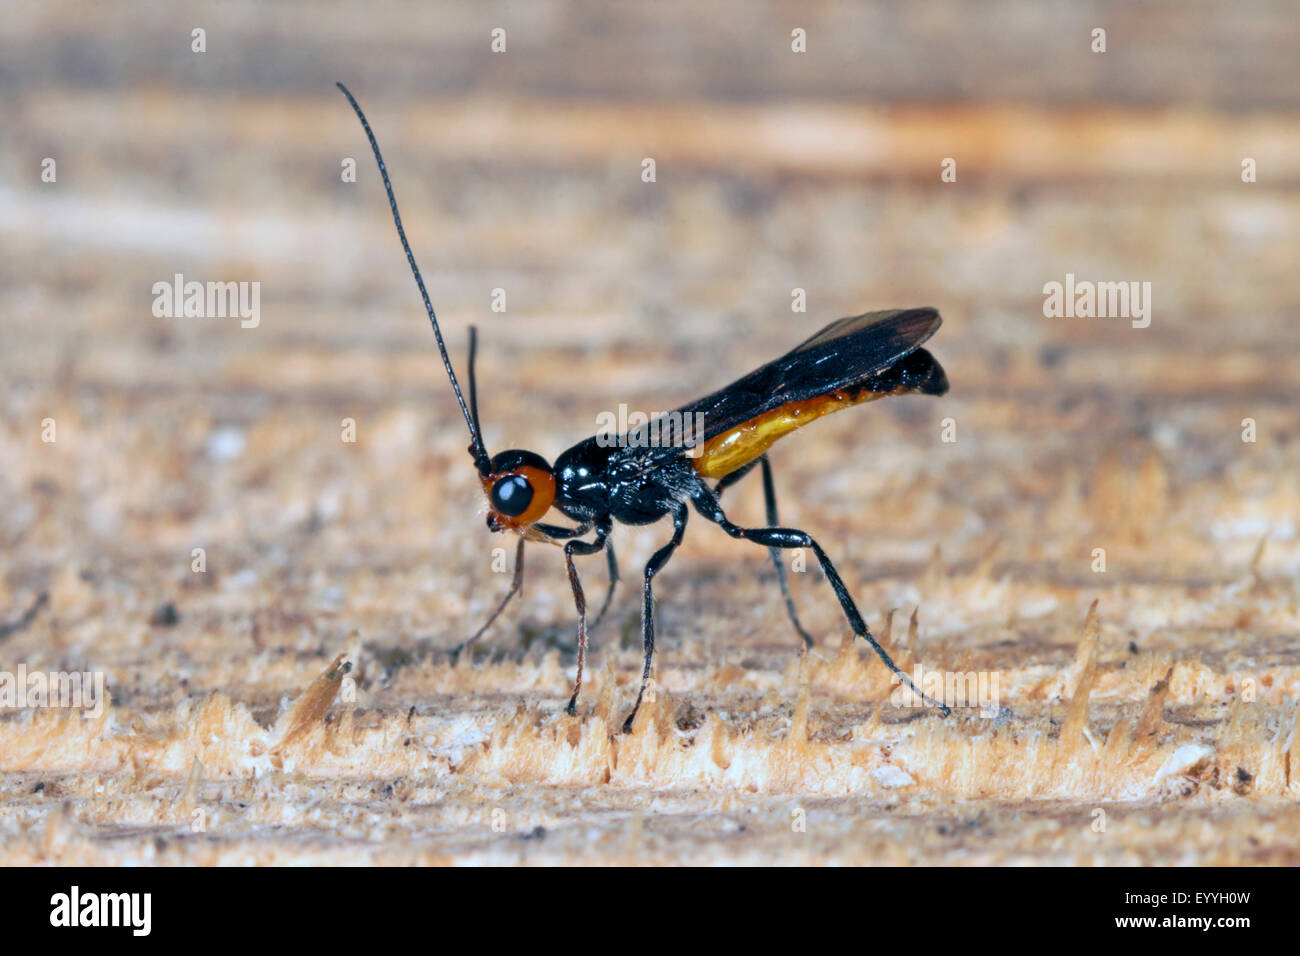 parasitoid wasp (Bracon spec), male - Stock Image